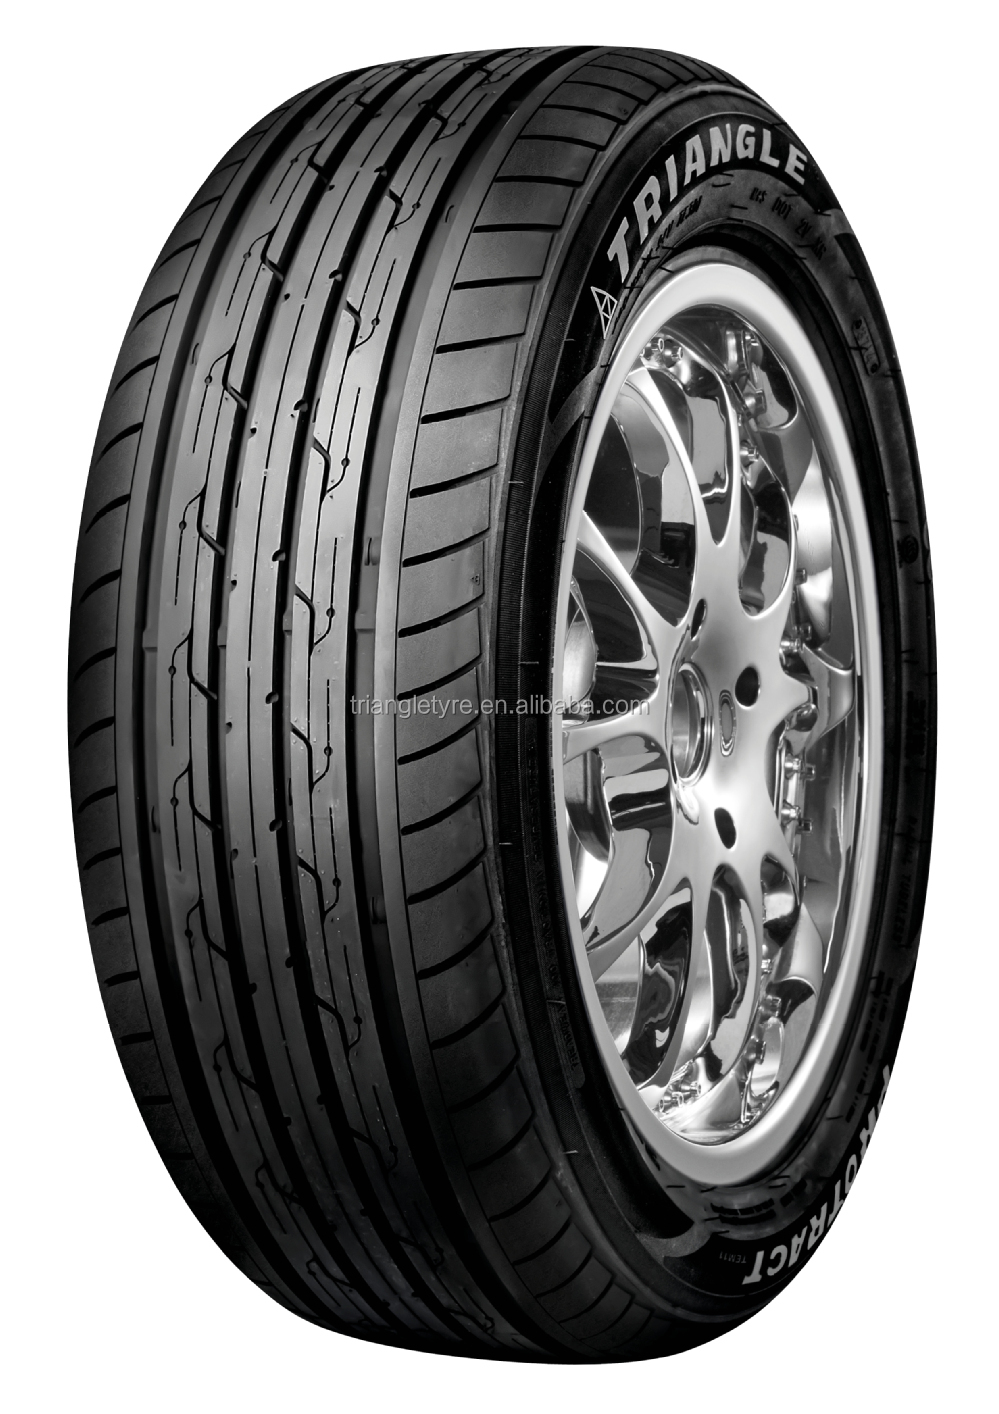 CAR TIRE MANUFACTURER IN CHINA CHINESE AUTOMOBLE INDUSTRY 165/70R13 175/70R13 TRIANGLE CAR TIRES